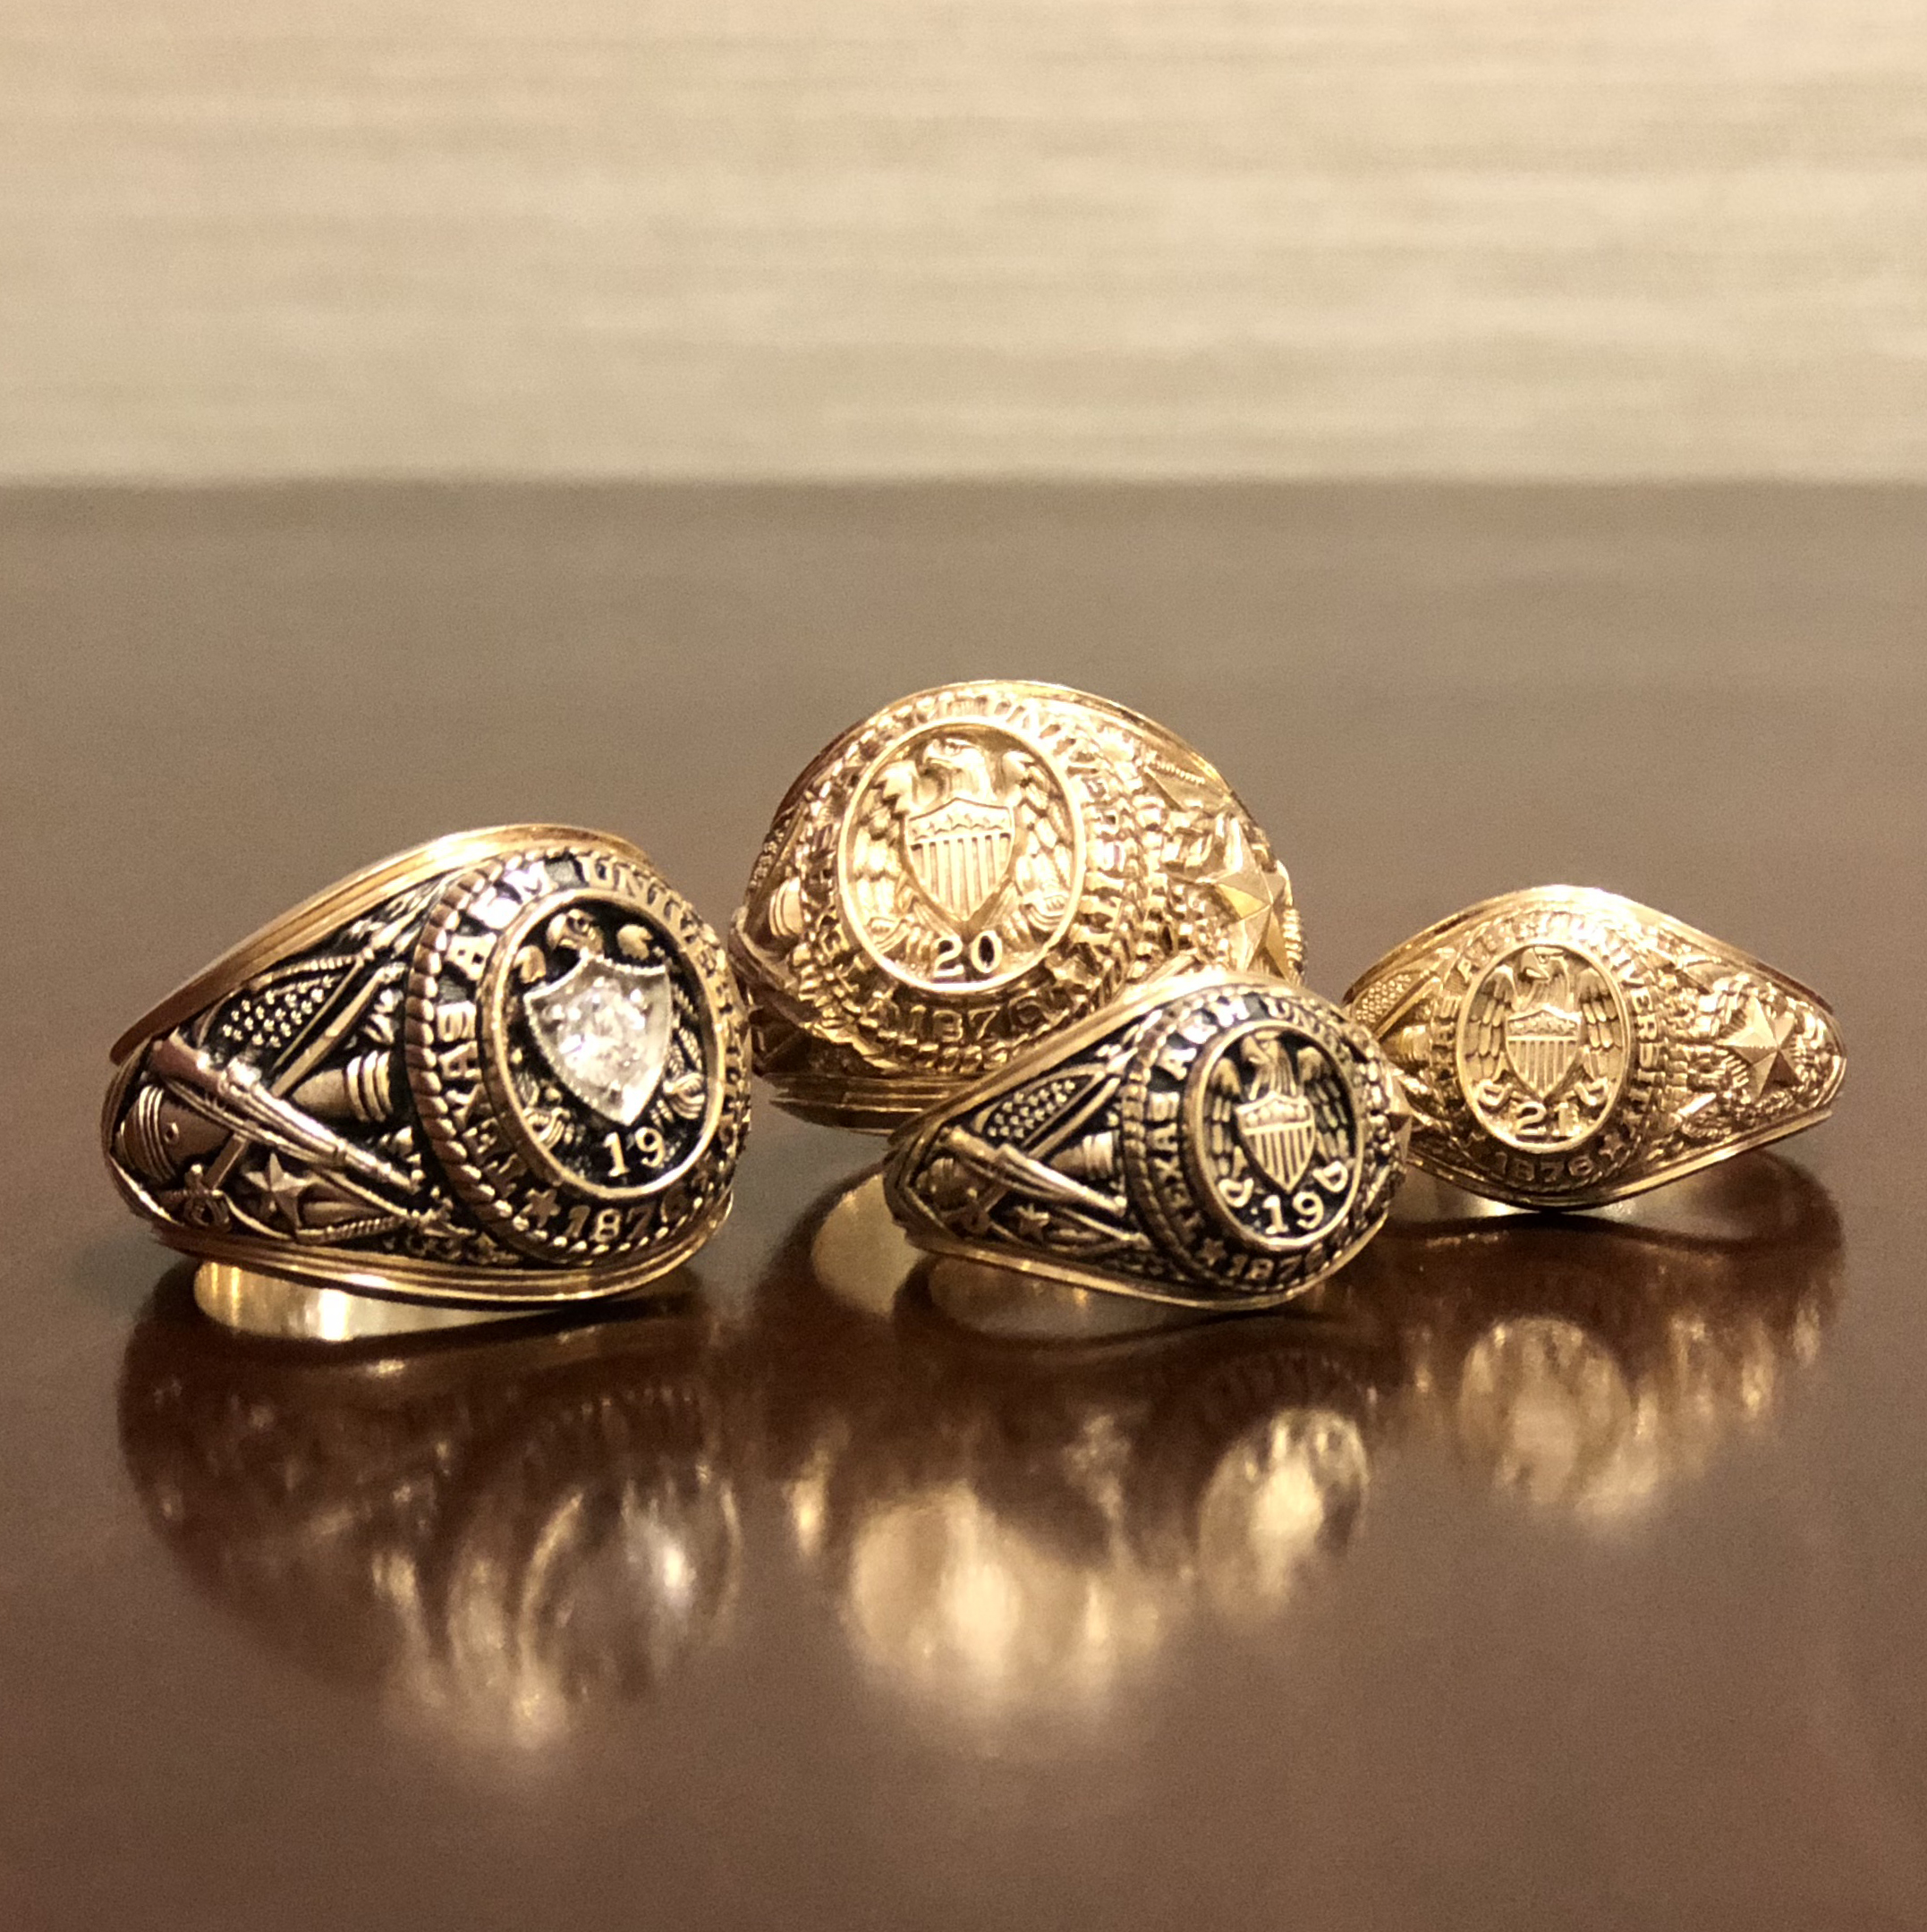 Applications Open For Aggie Ring Scholarships